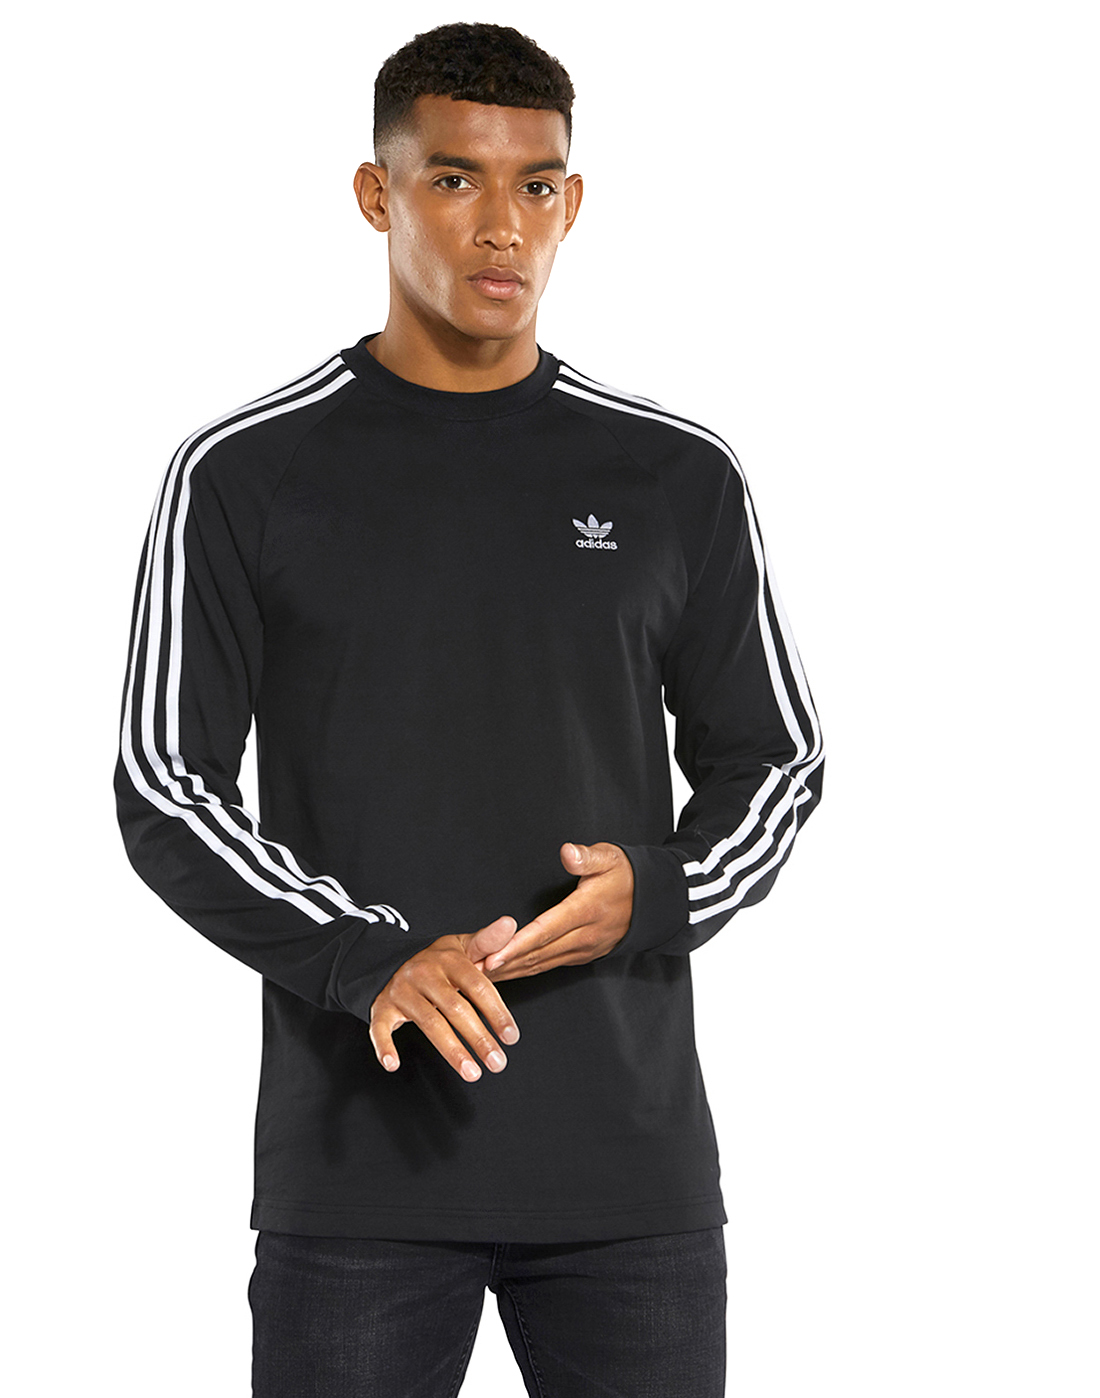 a5fcb6f29a Men's Black adidas Originals Long Sleeve T-Shirt | Life Style Sports